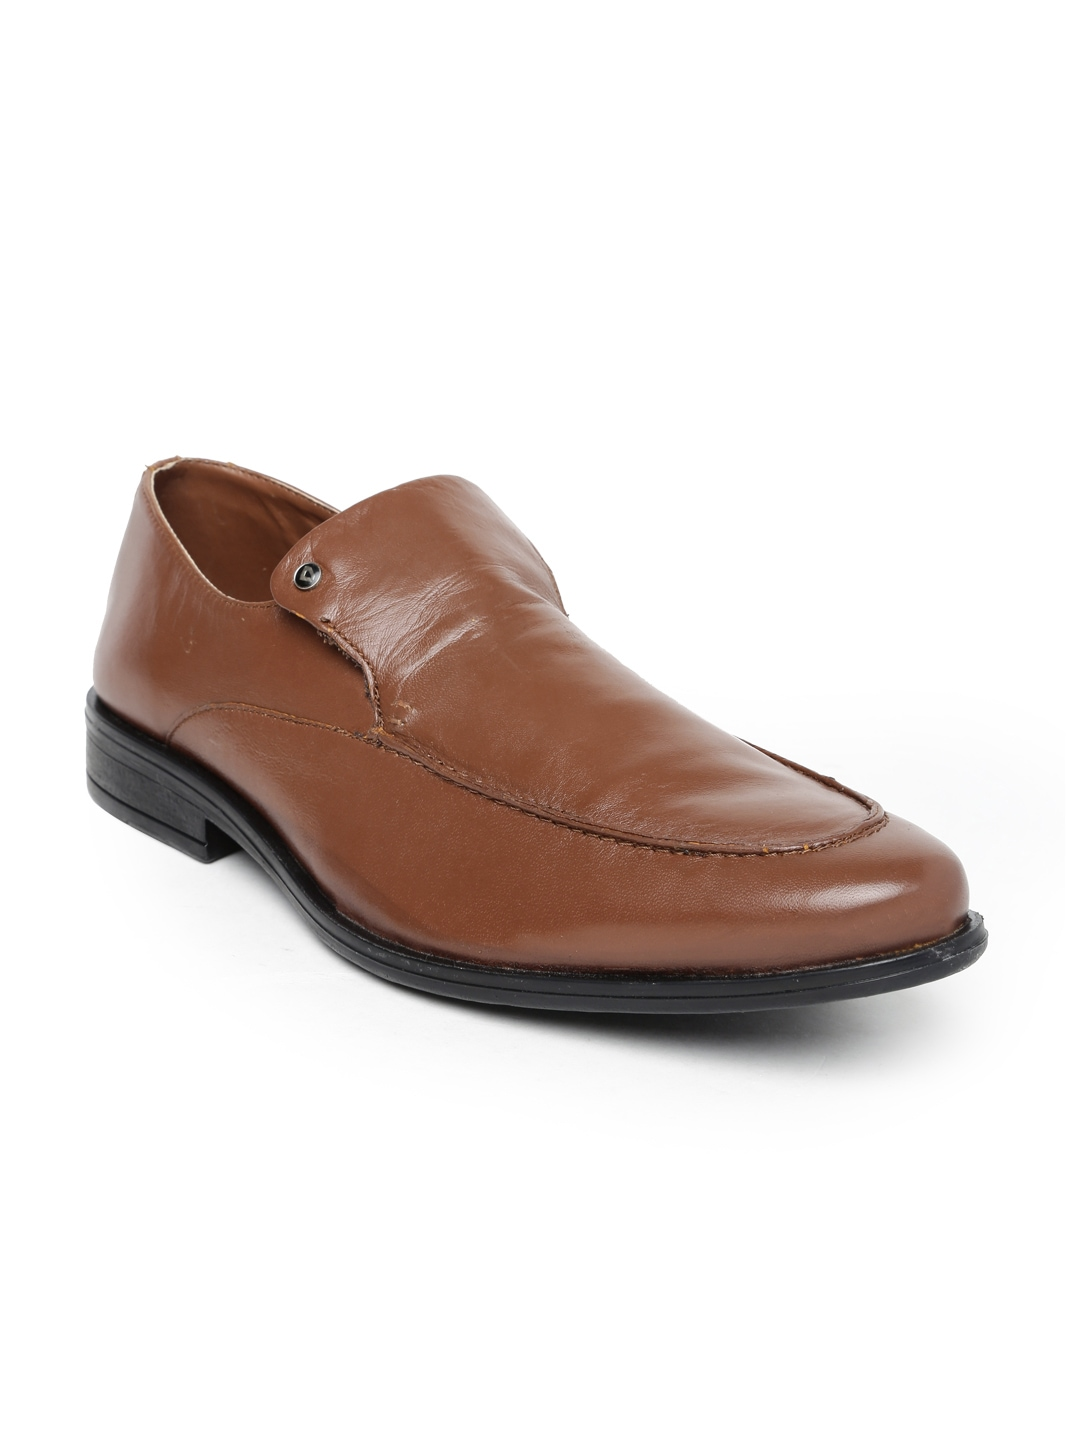 invictus brown leather formal shoes price myntra